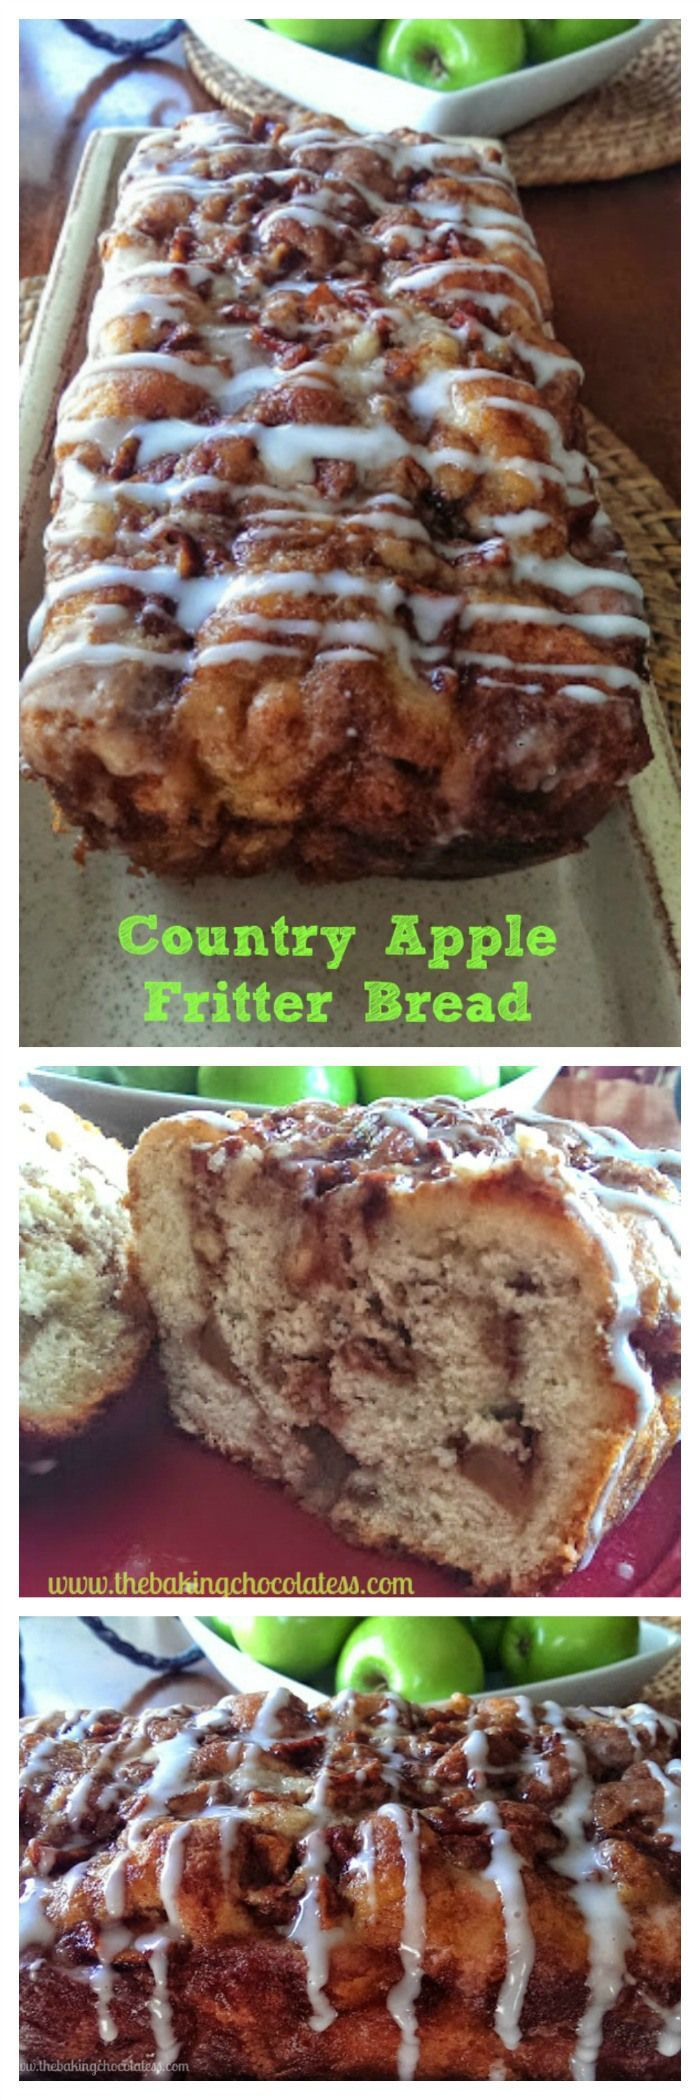 Awesome Country Apple Fritter Bread - You cannot resist. . .once you start smelling the succulent apple fritter bread aroma filling the air while it's baking. . .it's pretty much over.  Click through for recipe!